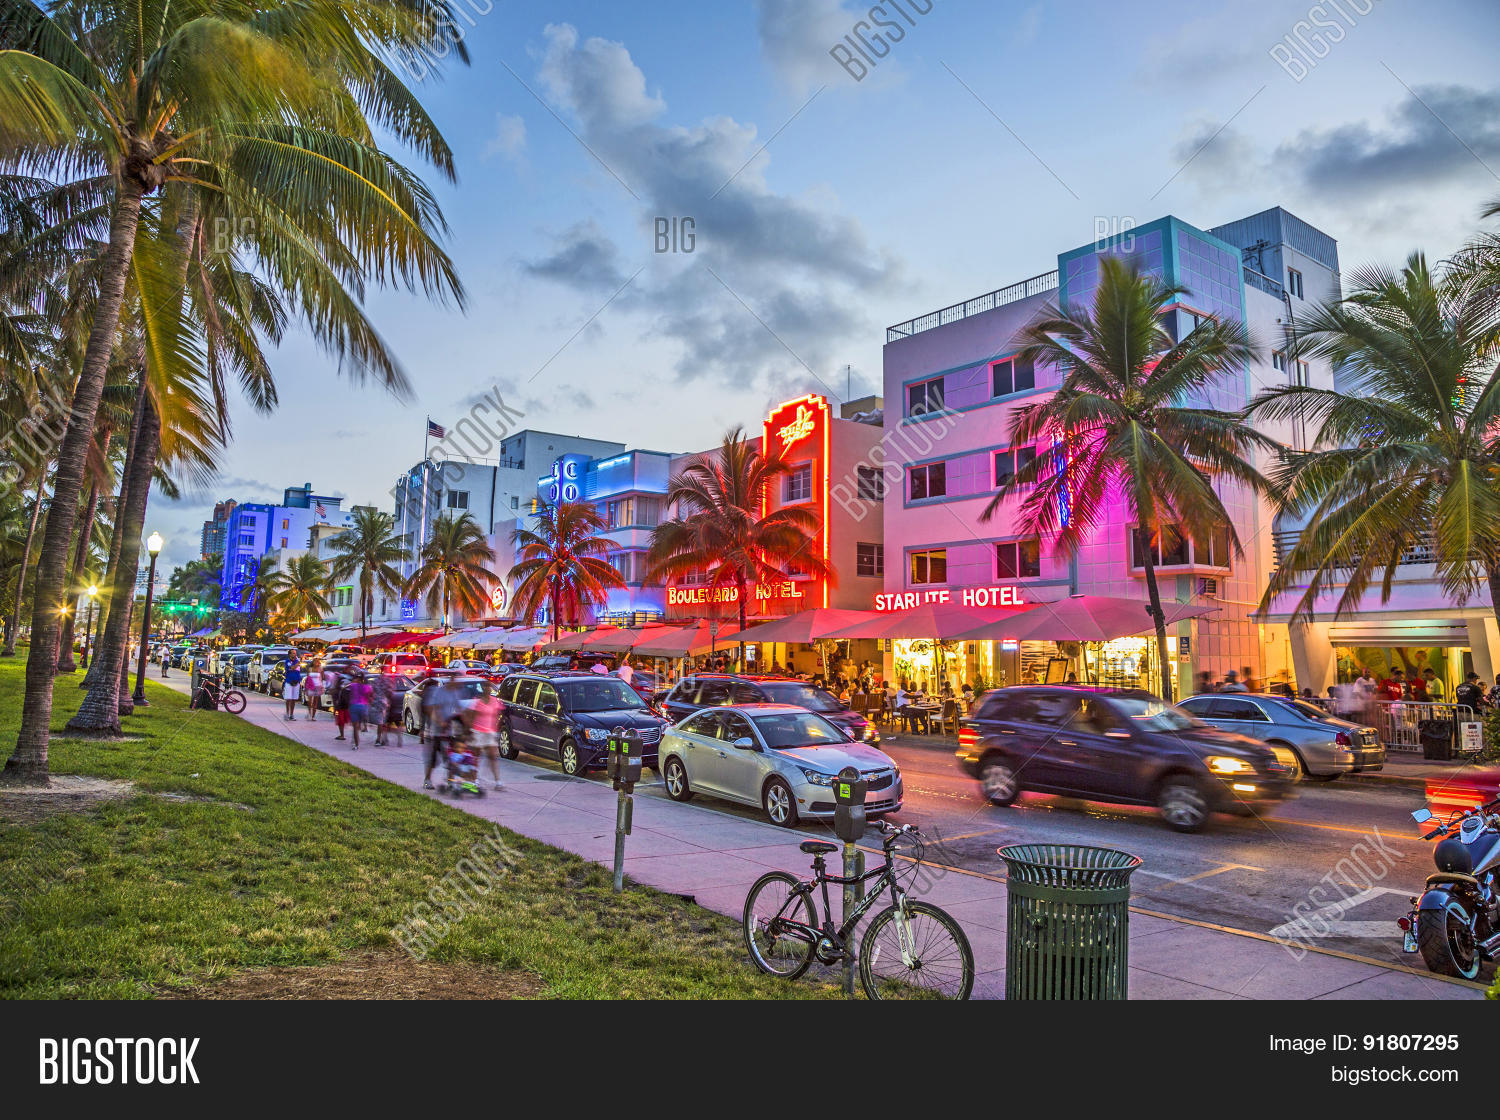 Stock Photo People Enjoy Palm Trees And Art Deco Hotels At Ocean Drive on 1500 Ocean Drive Miami Beach